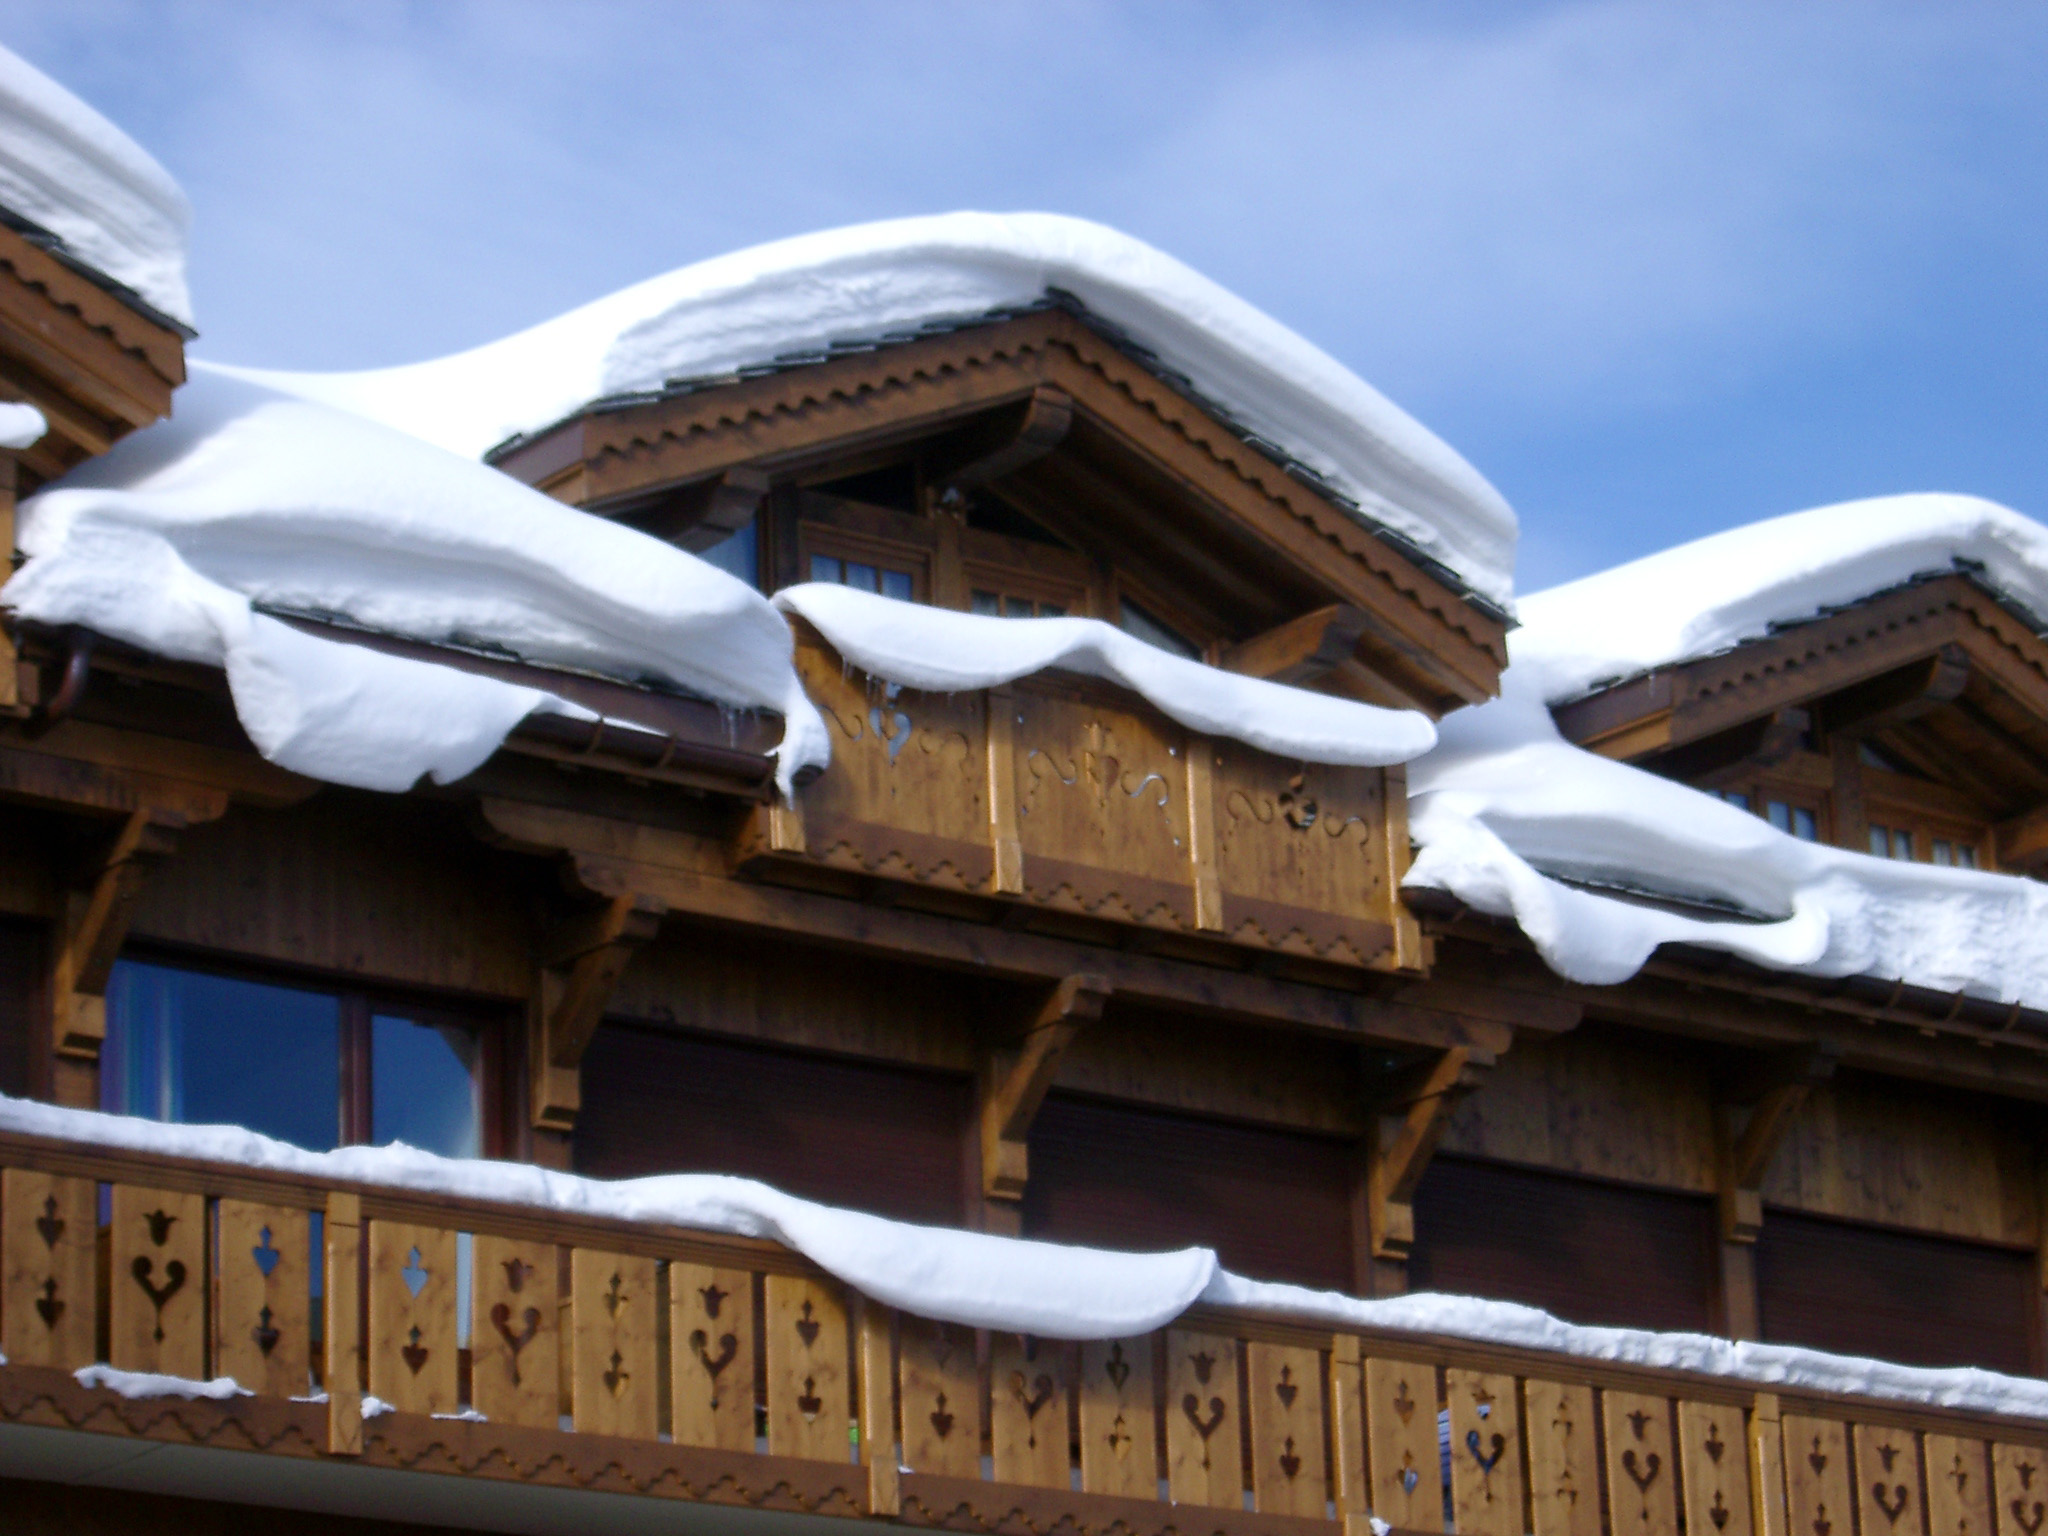 Detail of the roof and balconies of a traditional wooden alpine lodge covered in snow against a sunny blue sky